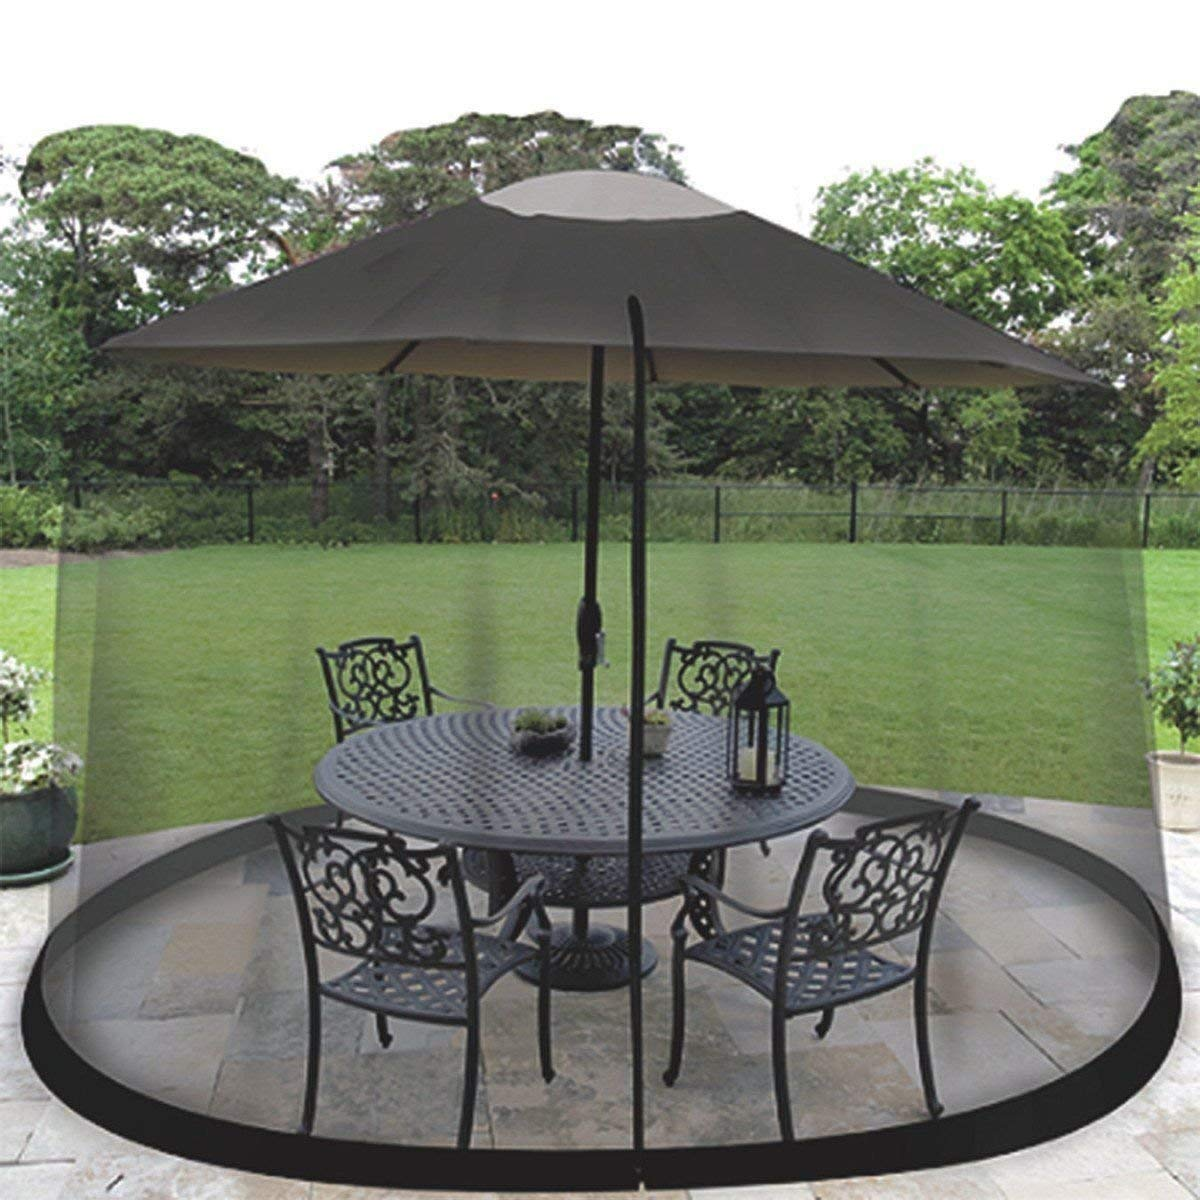 Garden Creations JB5678 Outdoor 9-Foot Umbrella Table Screen, Black by Garden Creations by TBA